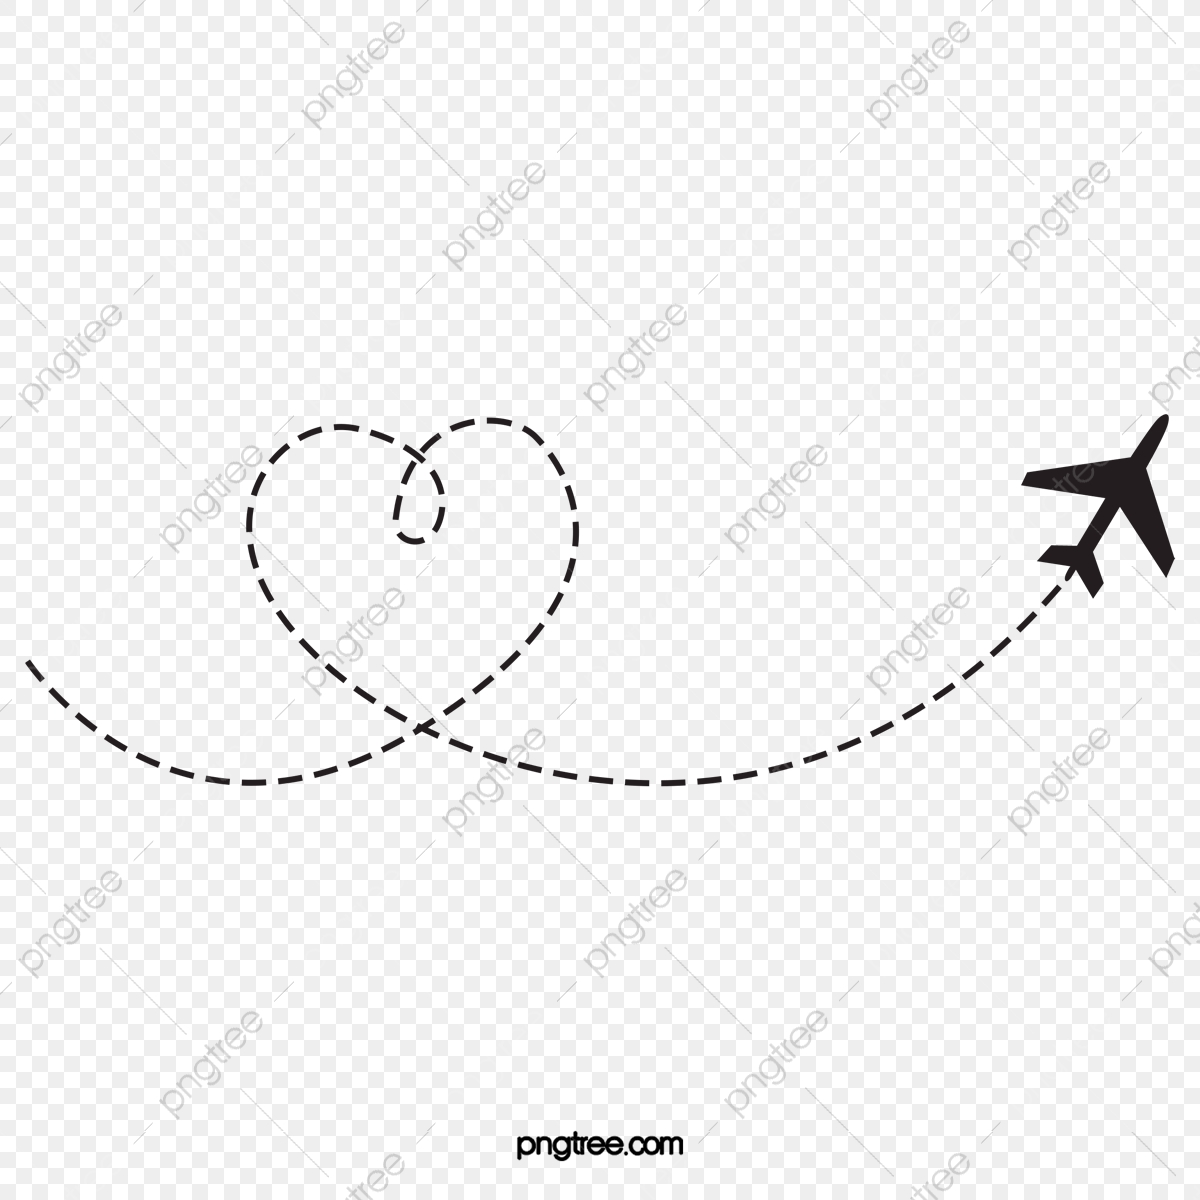 Heart Shaped Airplane Route Airplane Clipart Black Heart Shaped